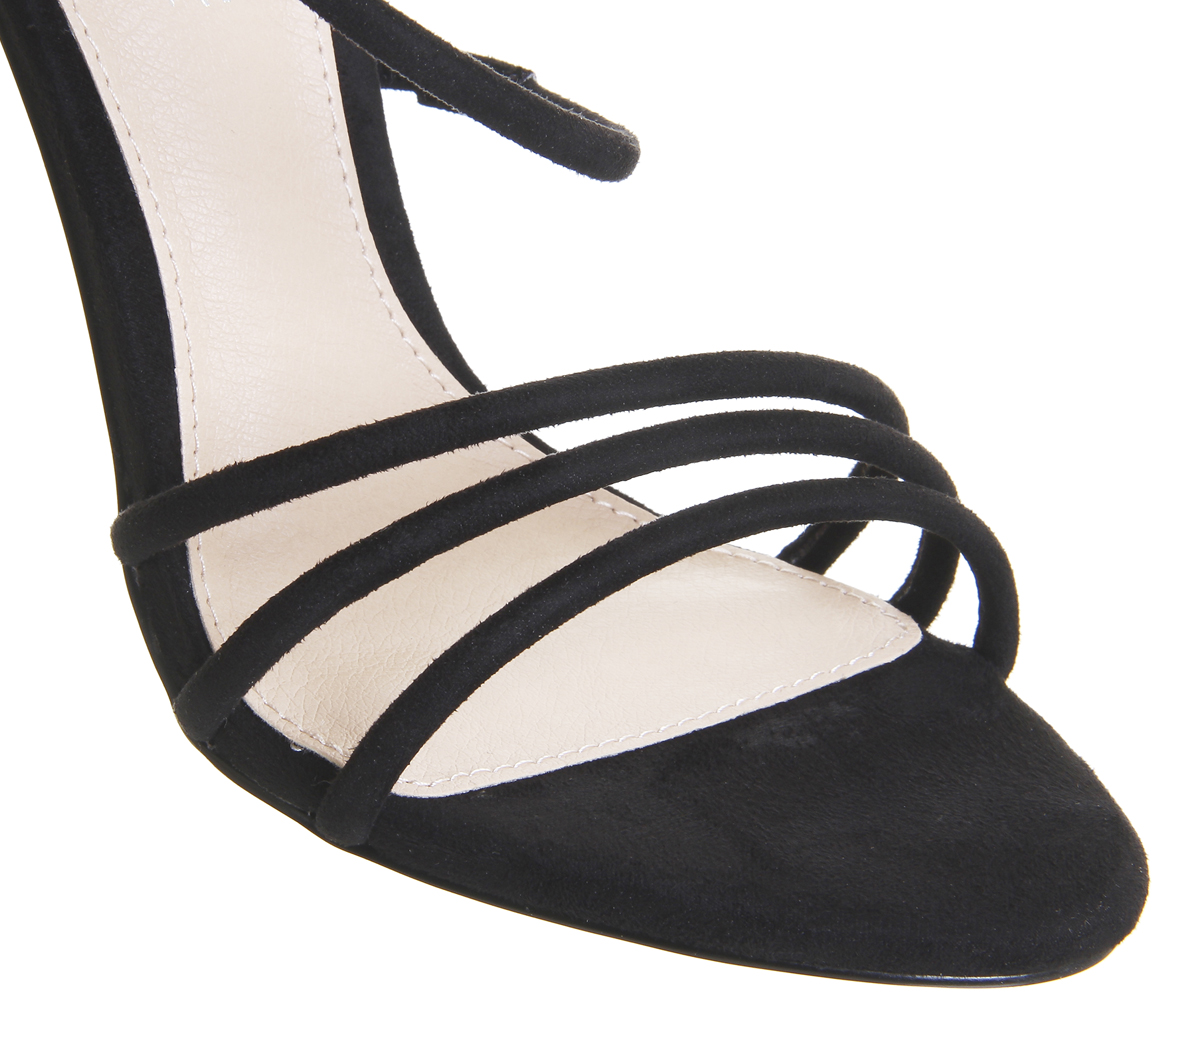 bdc52ecbbda Womens-Office-Harness-Strappy-Sandals-Black-Heels thumbnail 7